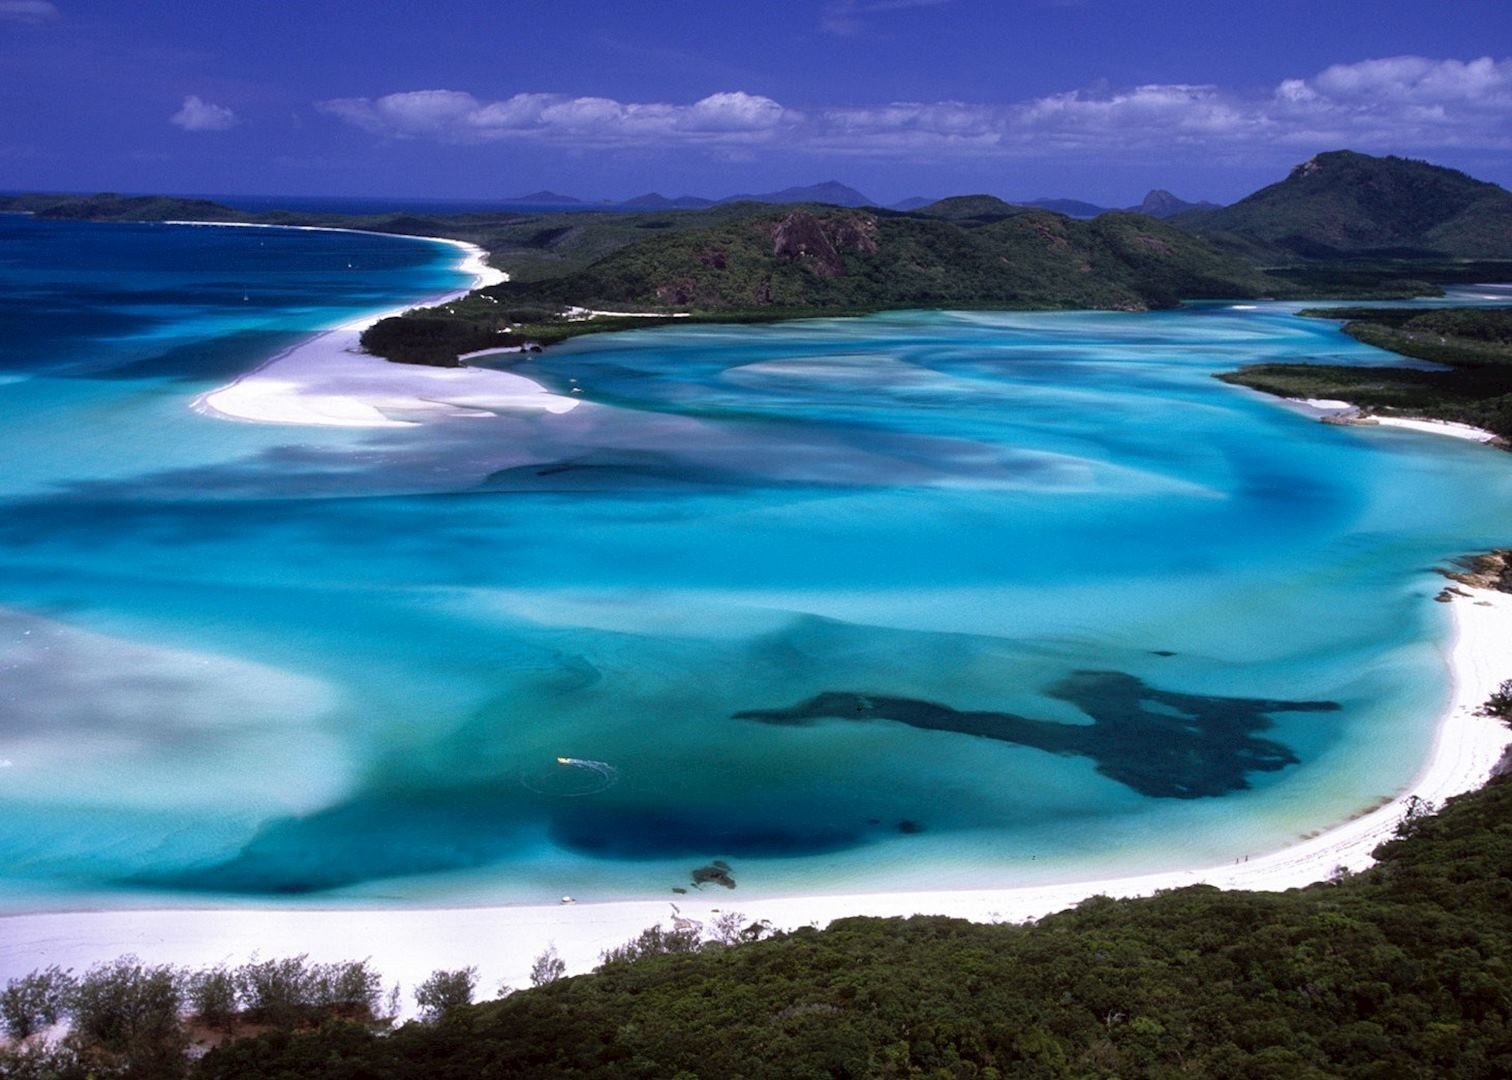 Heart Hotel and Gallery Whitsundays Reviews, Airlie Beach/Whitsunday Islands